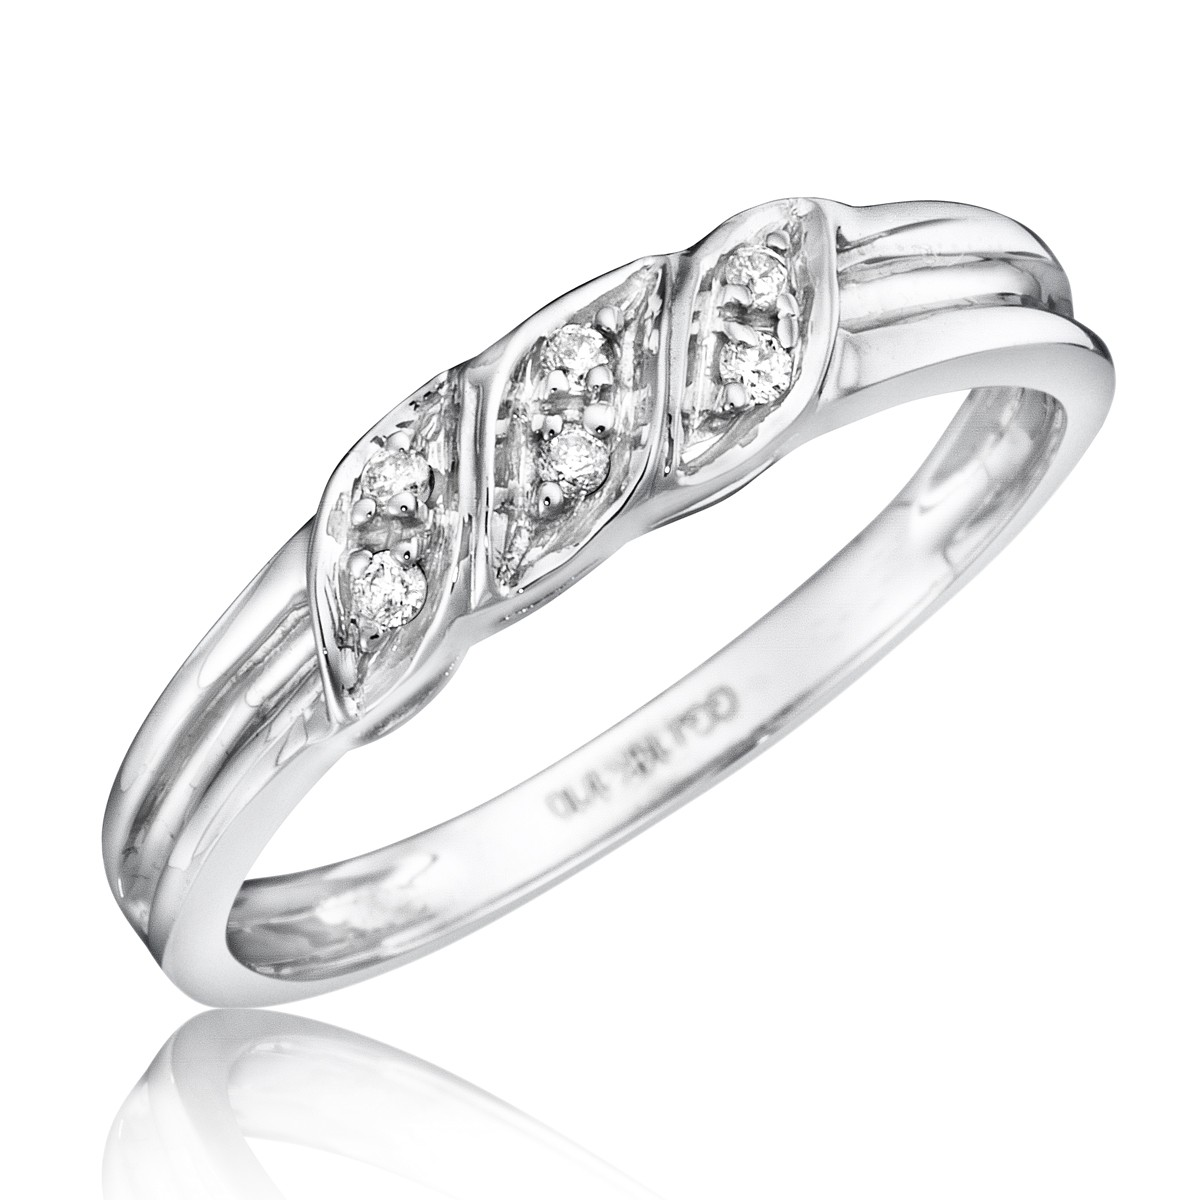 1/15 Carat T.W. Diamond Women's Wedding Ring 14K White Gold